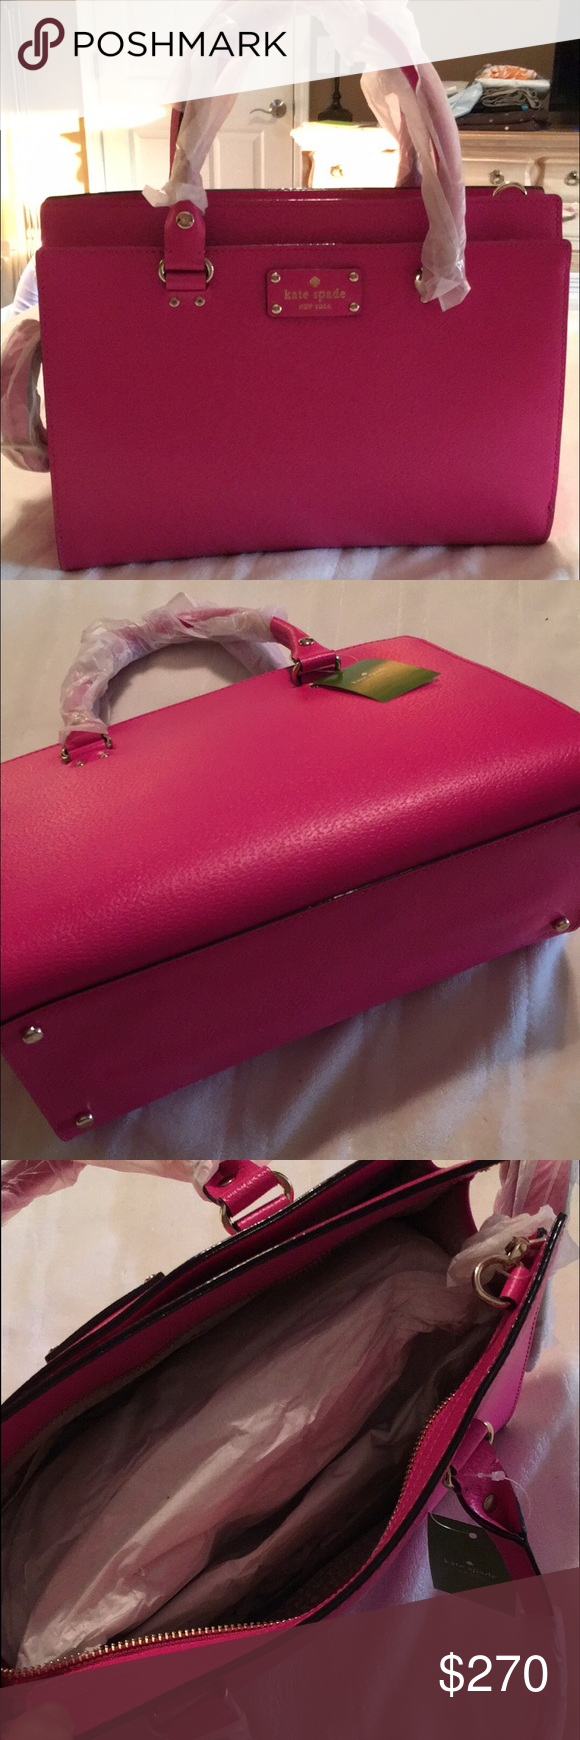 Kate Spade in Snapdragon! Brand new with tags Kate Spade leather purse! The color is Snapdragon kate spade Bags Shoulder Bags